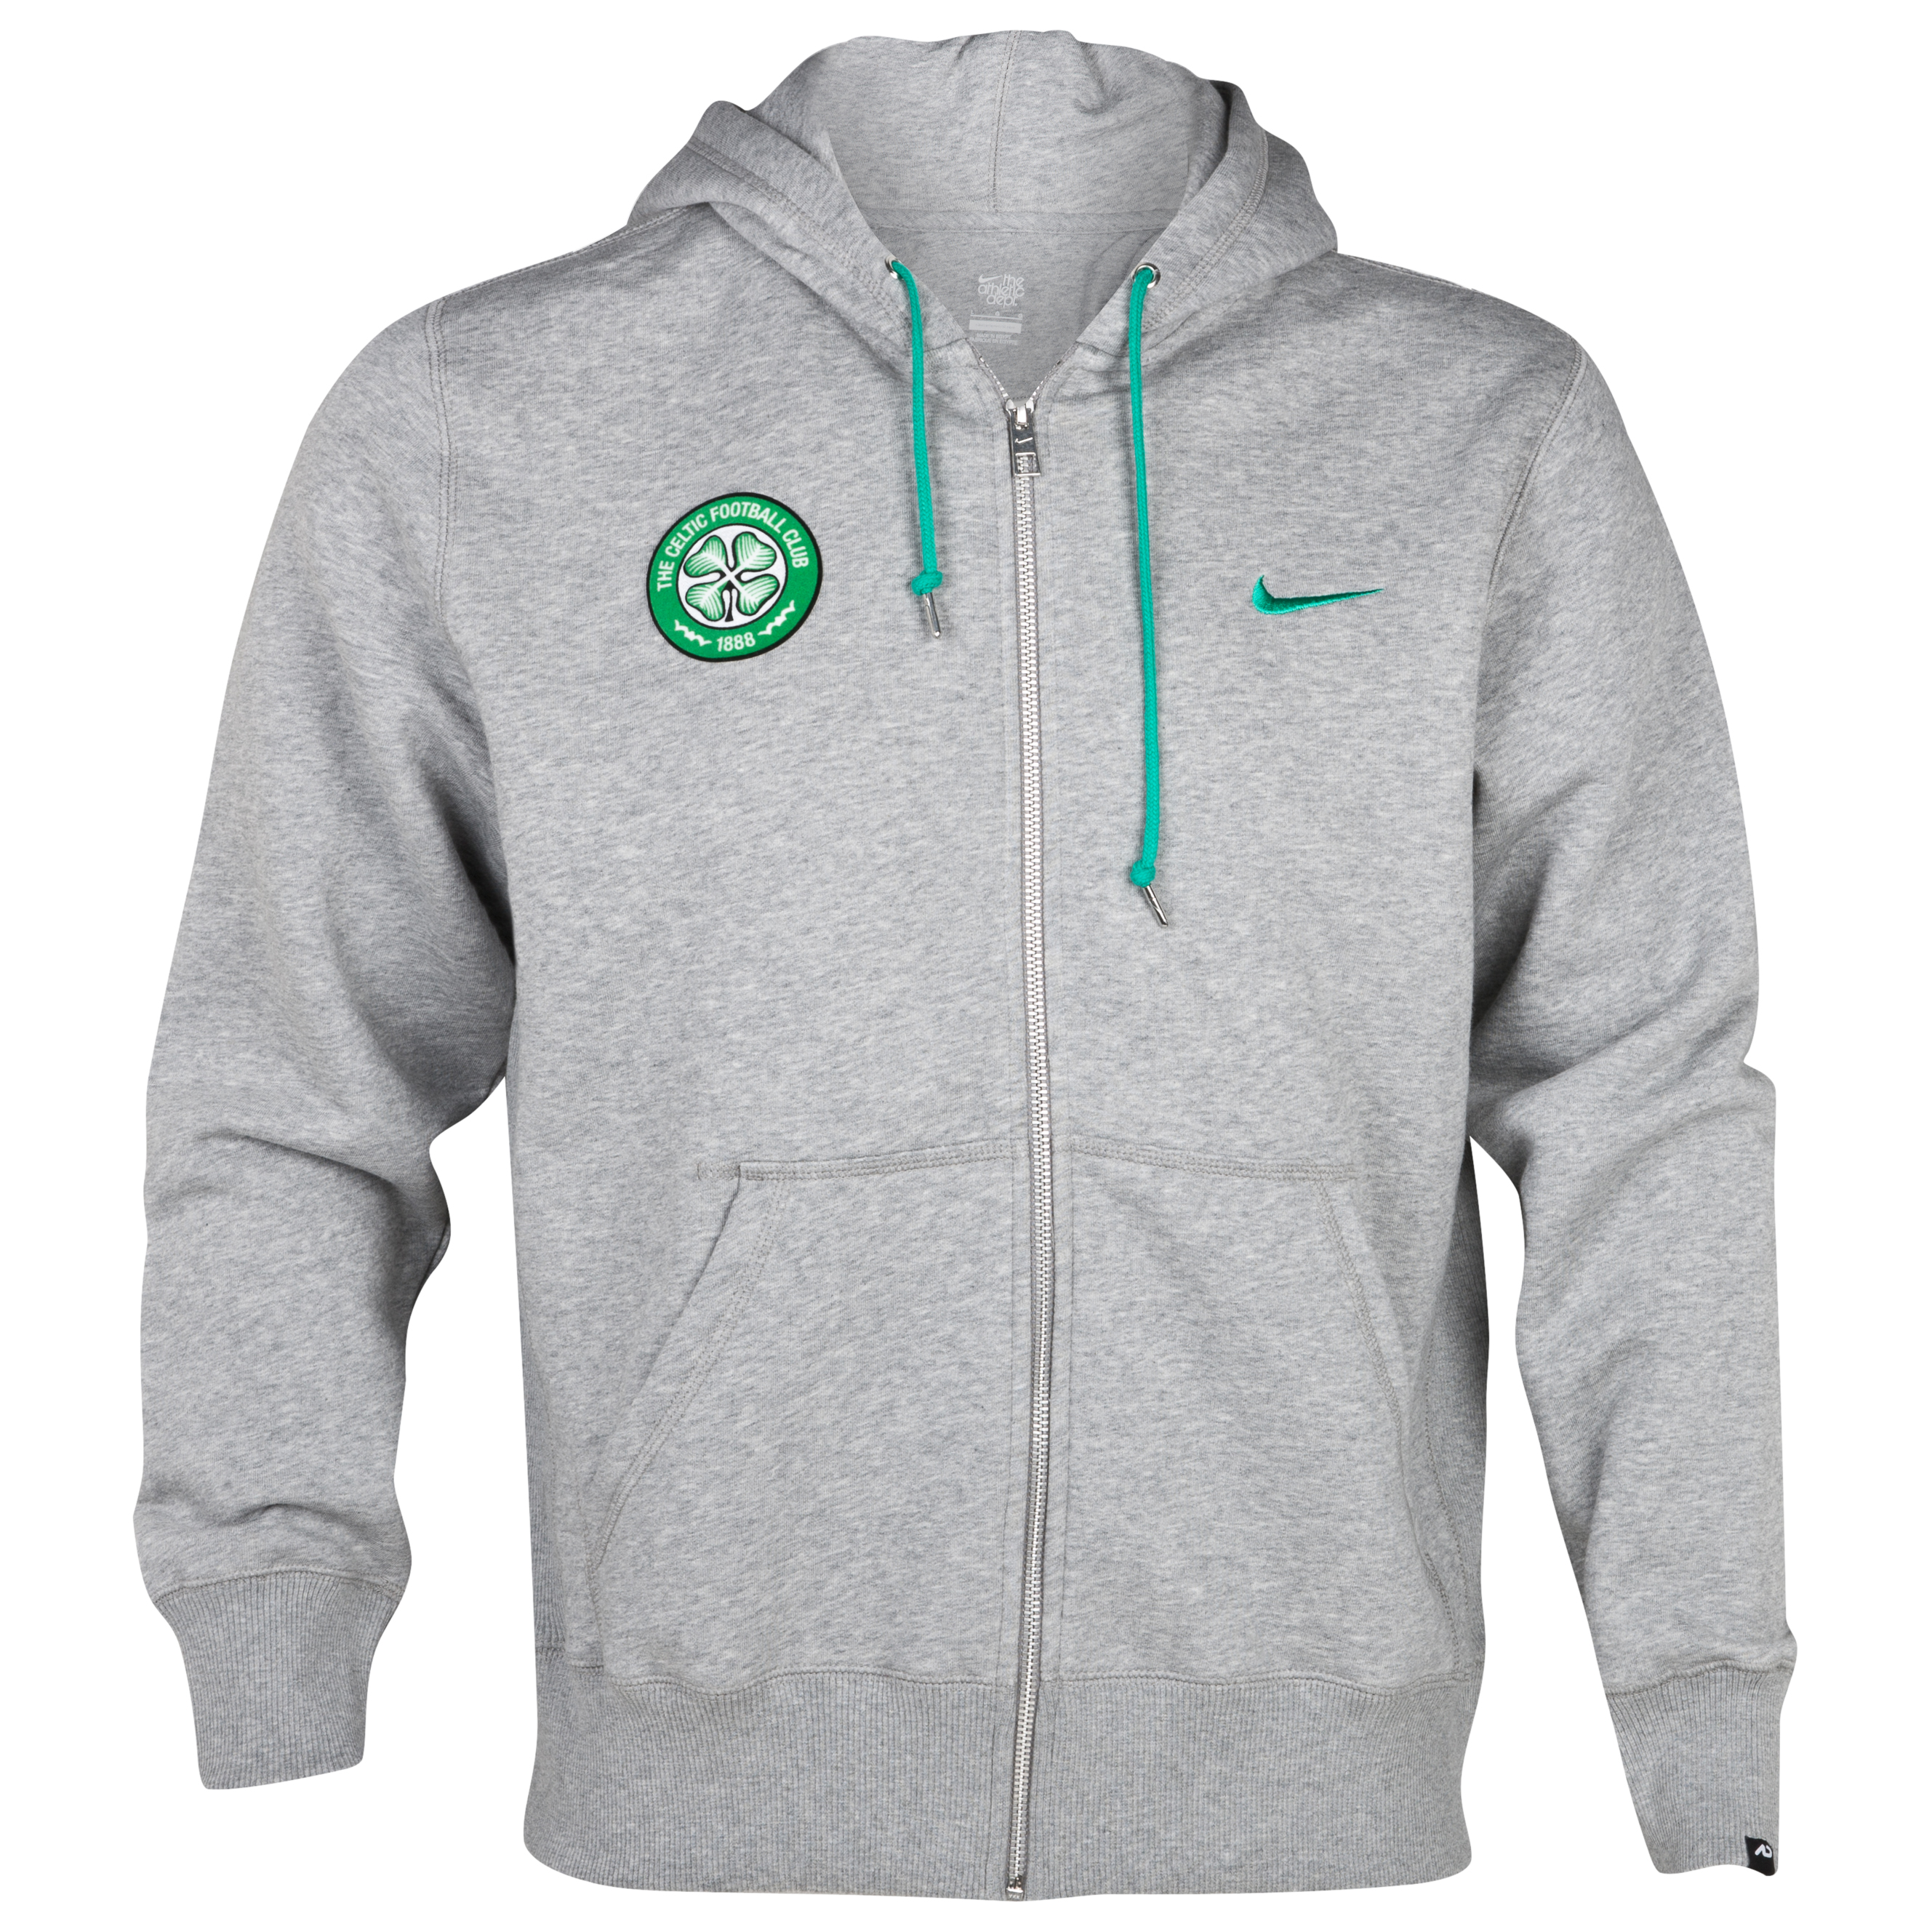 Celtic Squad Fleece Full Zip Hoody - Dark Gey/Stadium Green